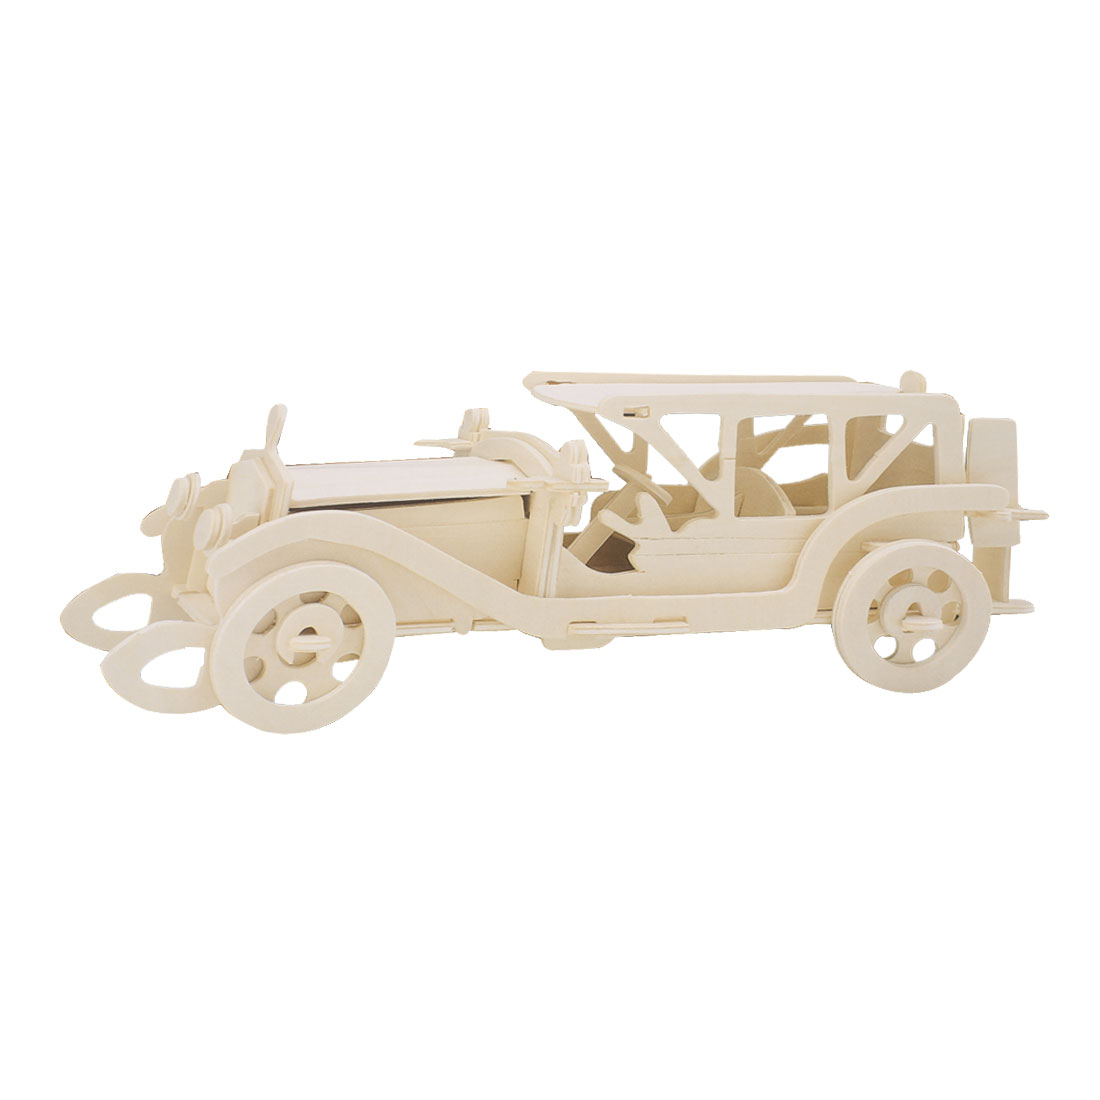 Franklin Rolling Automobile 3D Jigsaw Puzzle Model DIY Toy for Teenagers